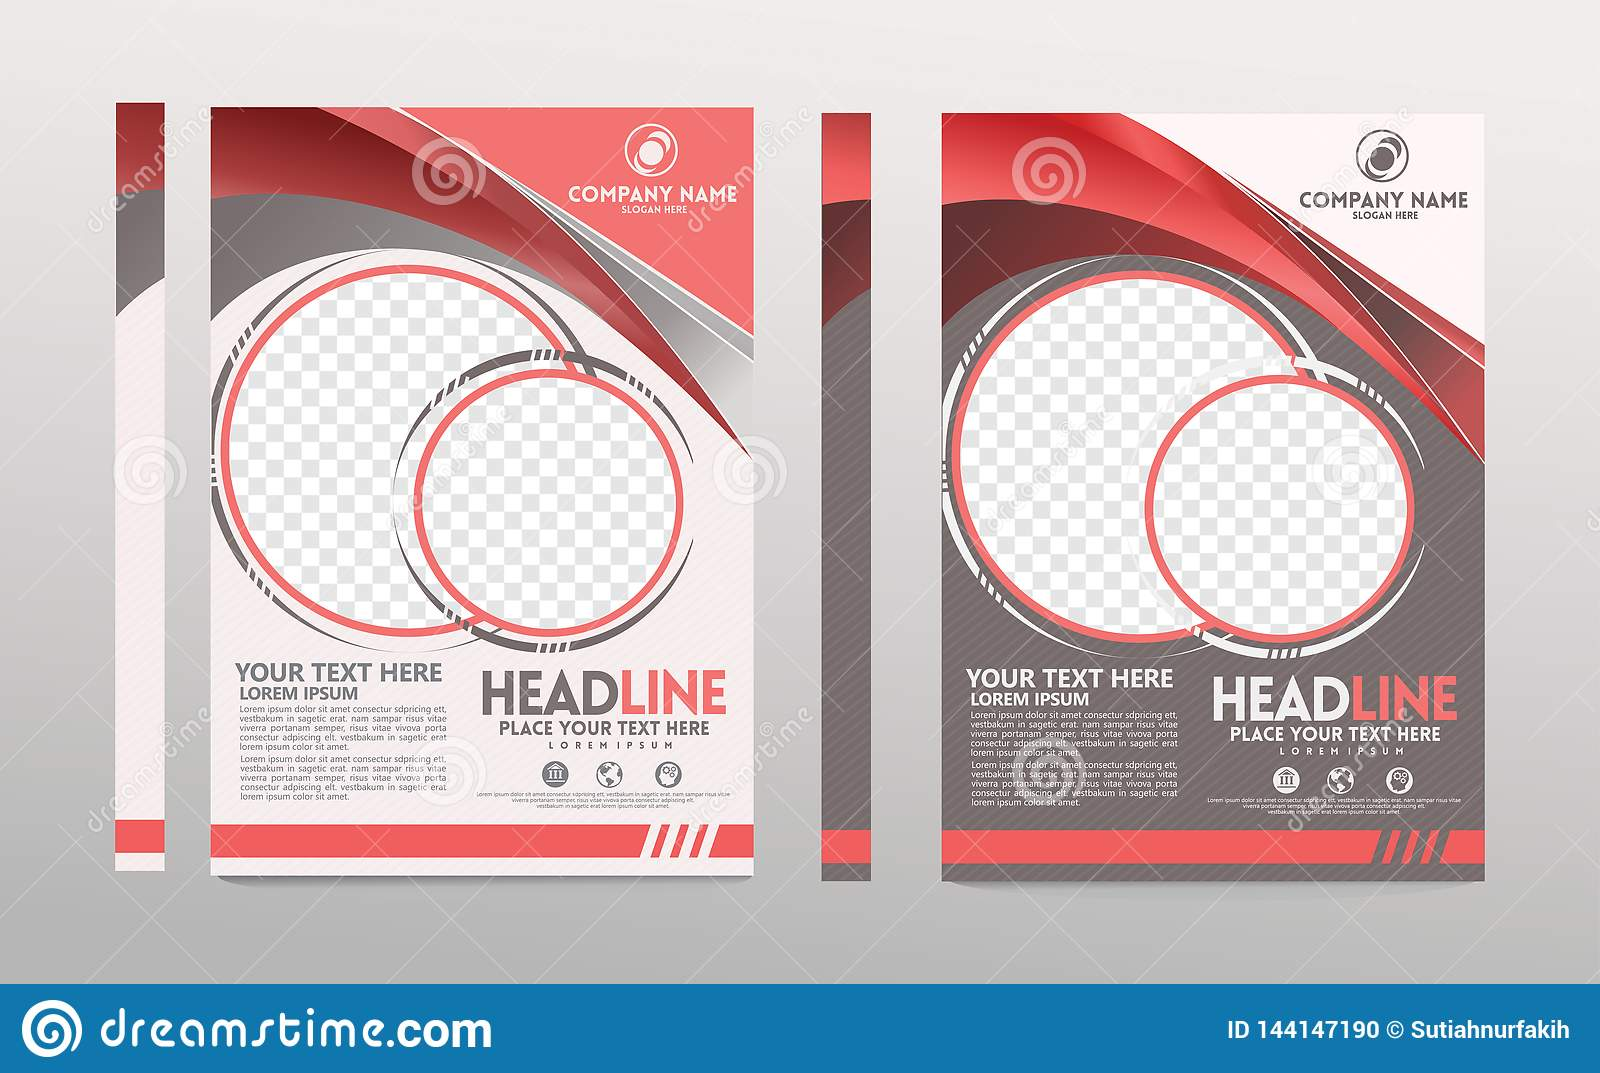 Cover template a4 size. Business brochure design. Annual report cover. Vector illustration